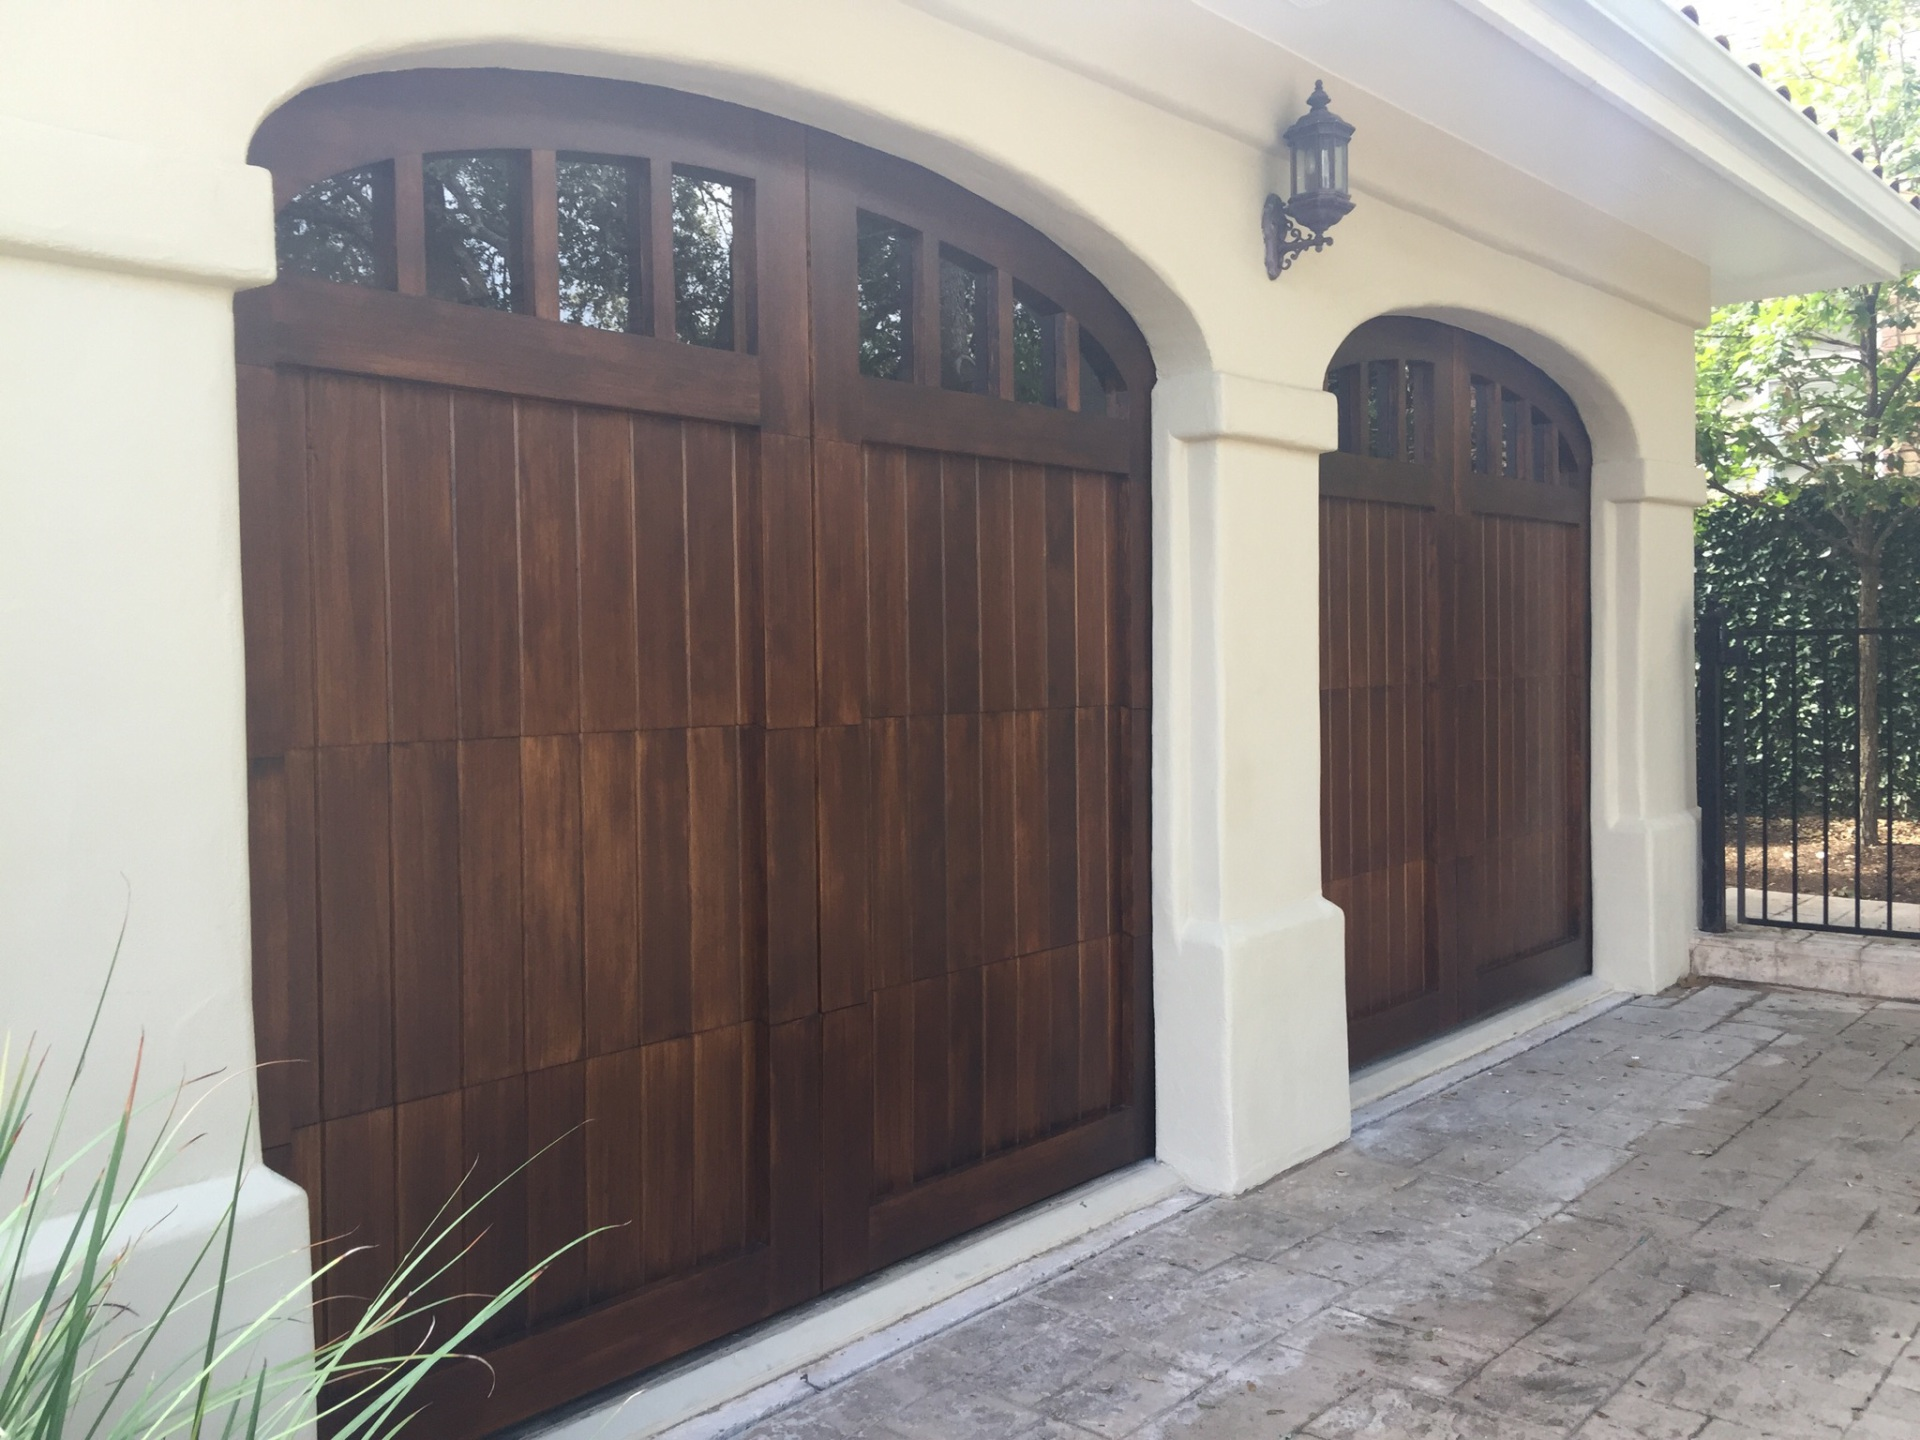 Hemlock garage doors with arched windows and a dark oak stain.